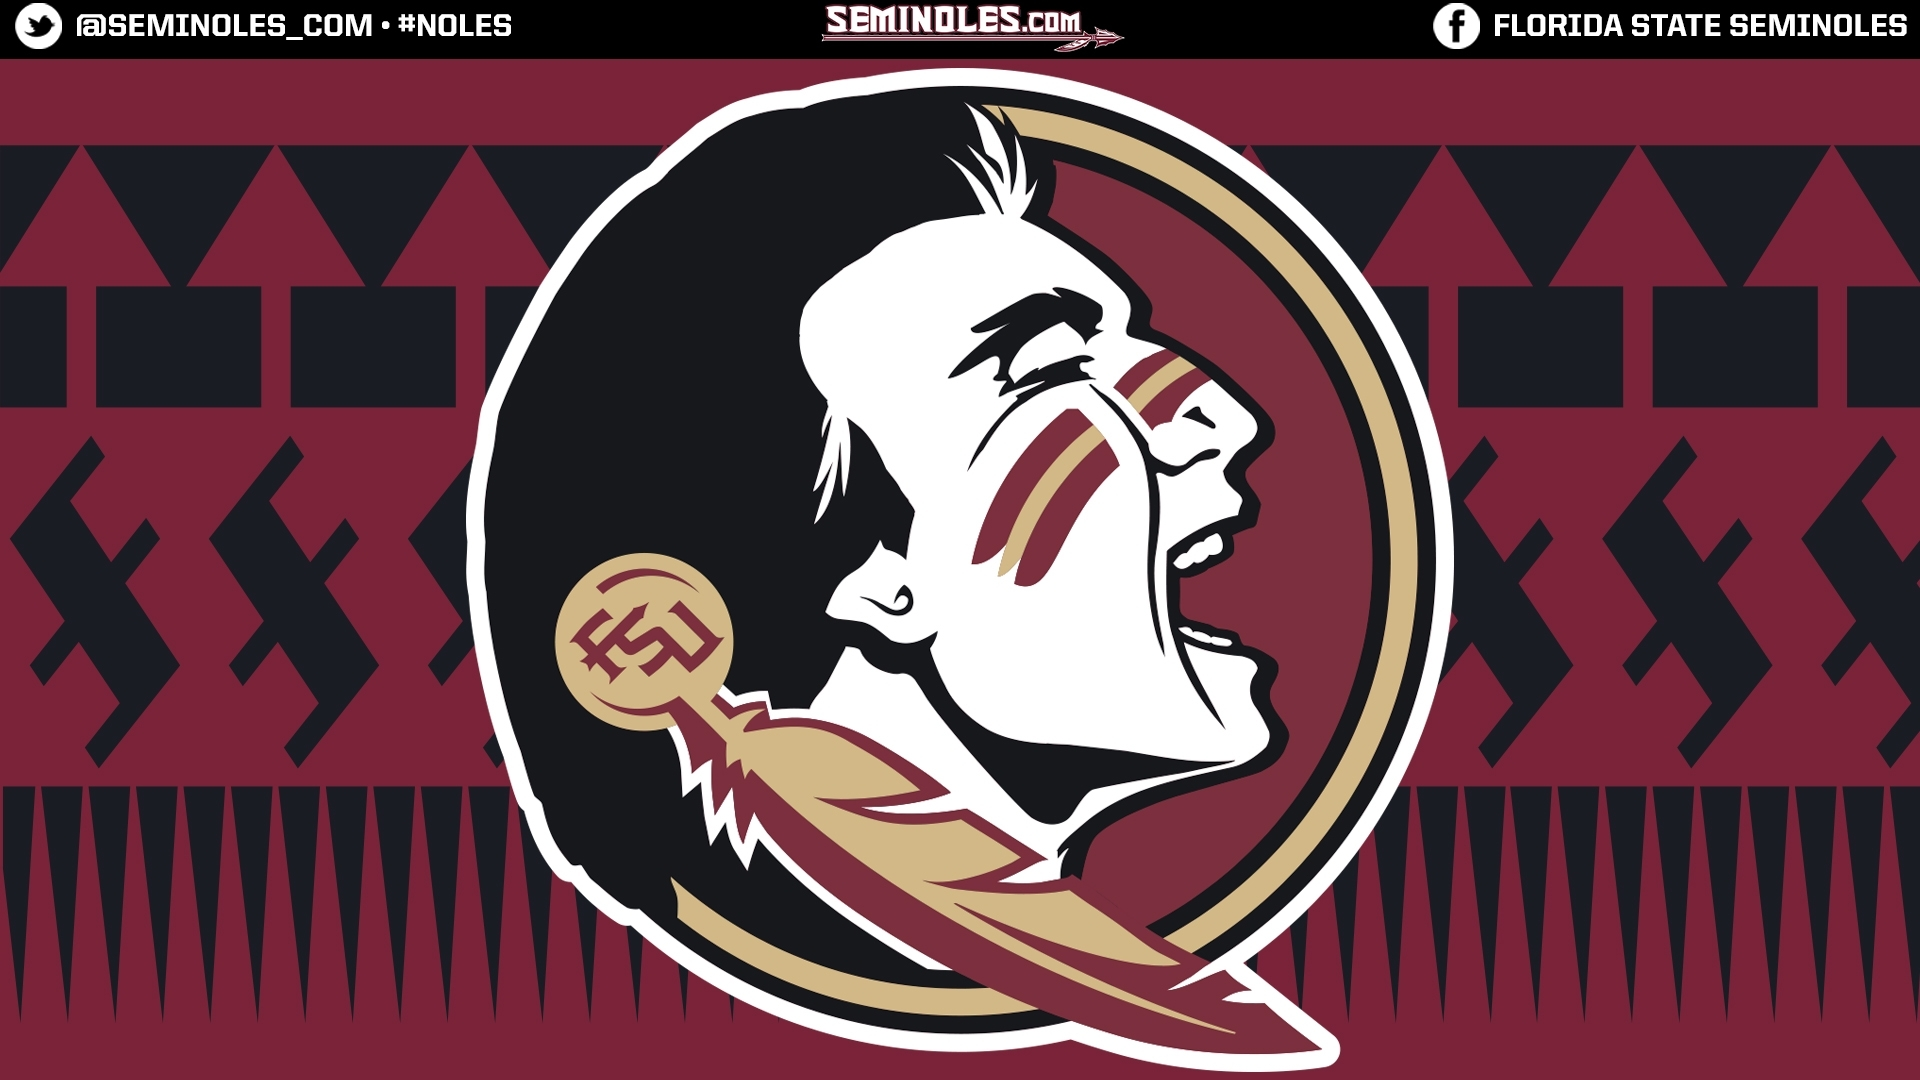 seminoles desktop wallpapers